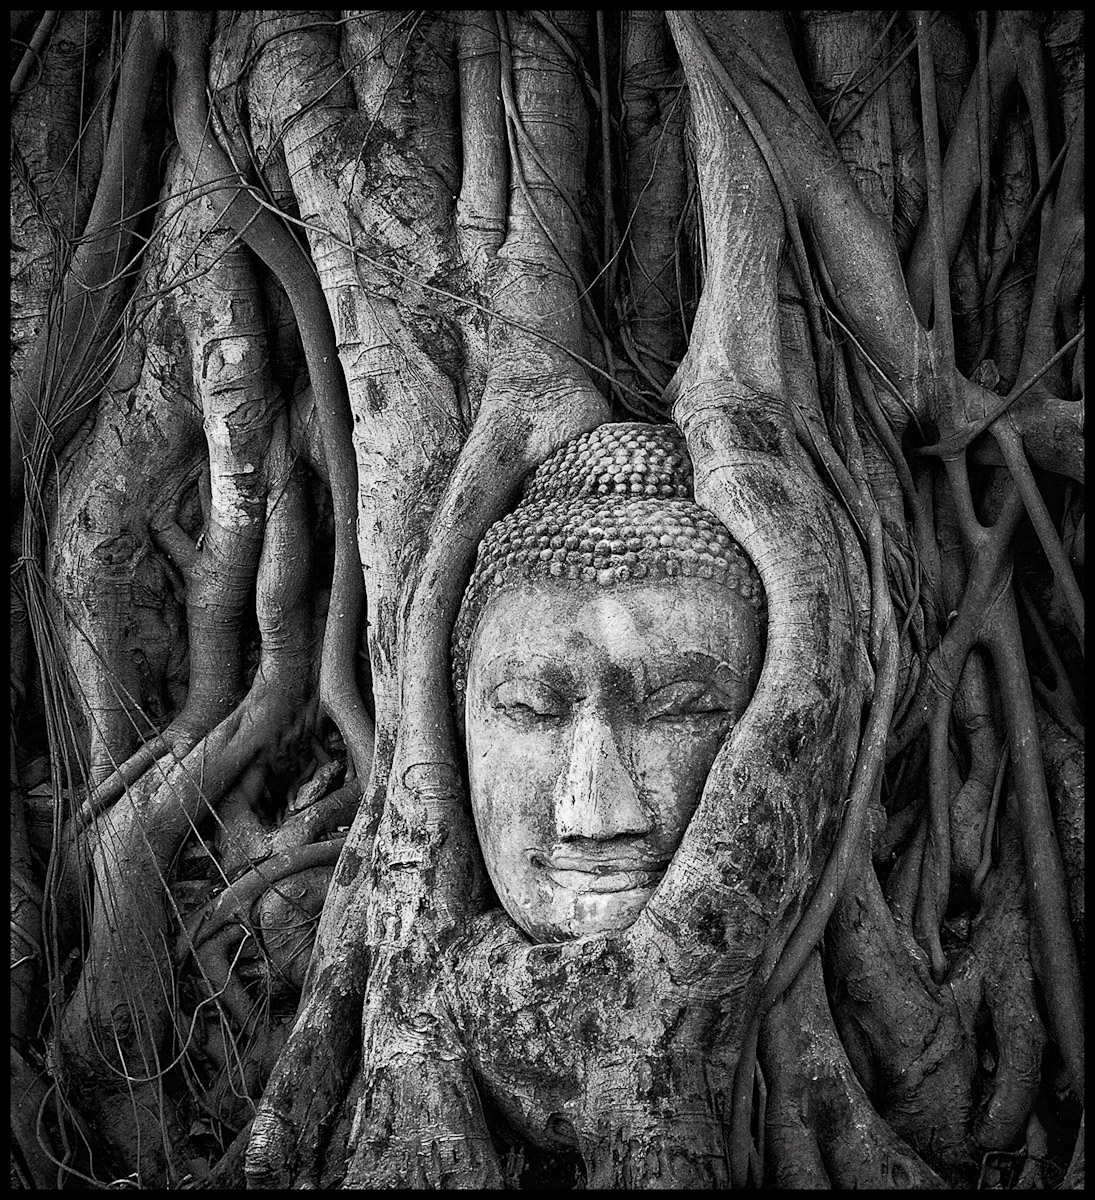 Buddha in banyan roots